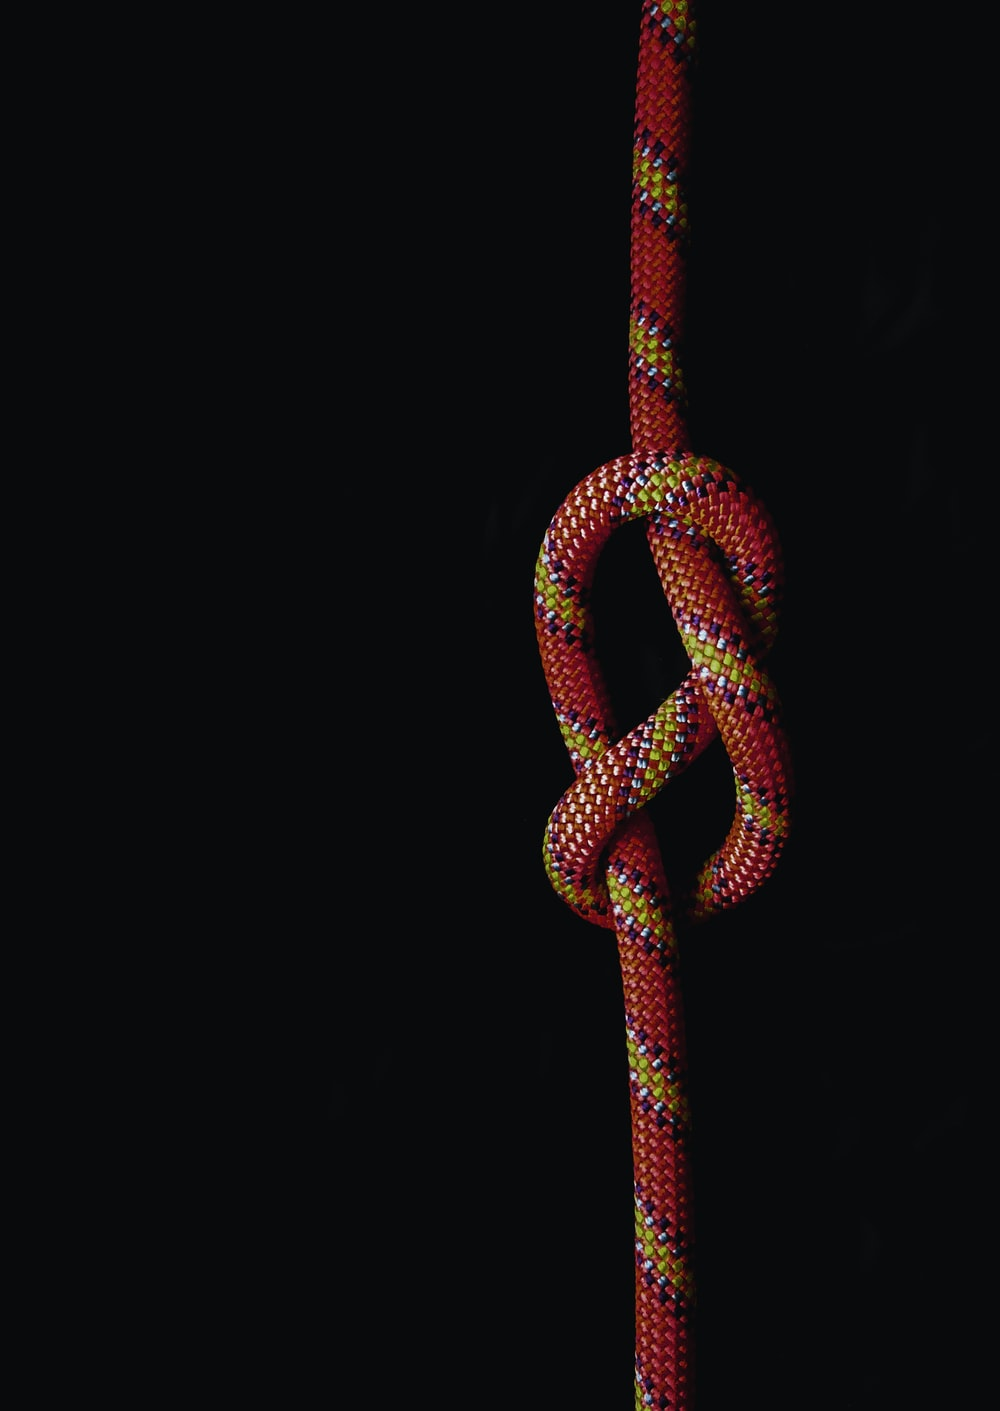 white and red rope on black background